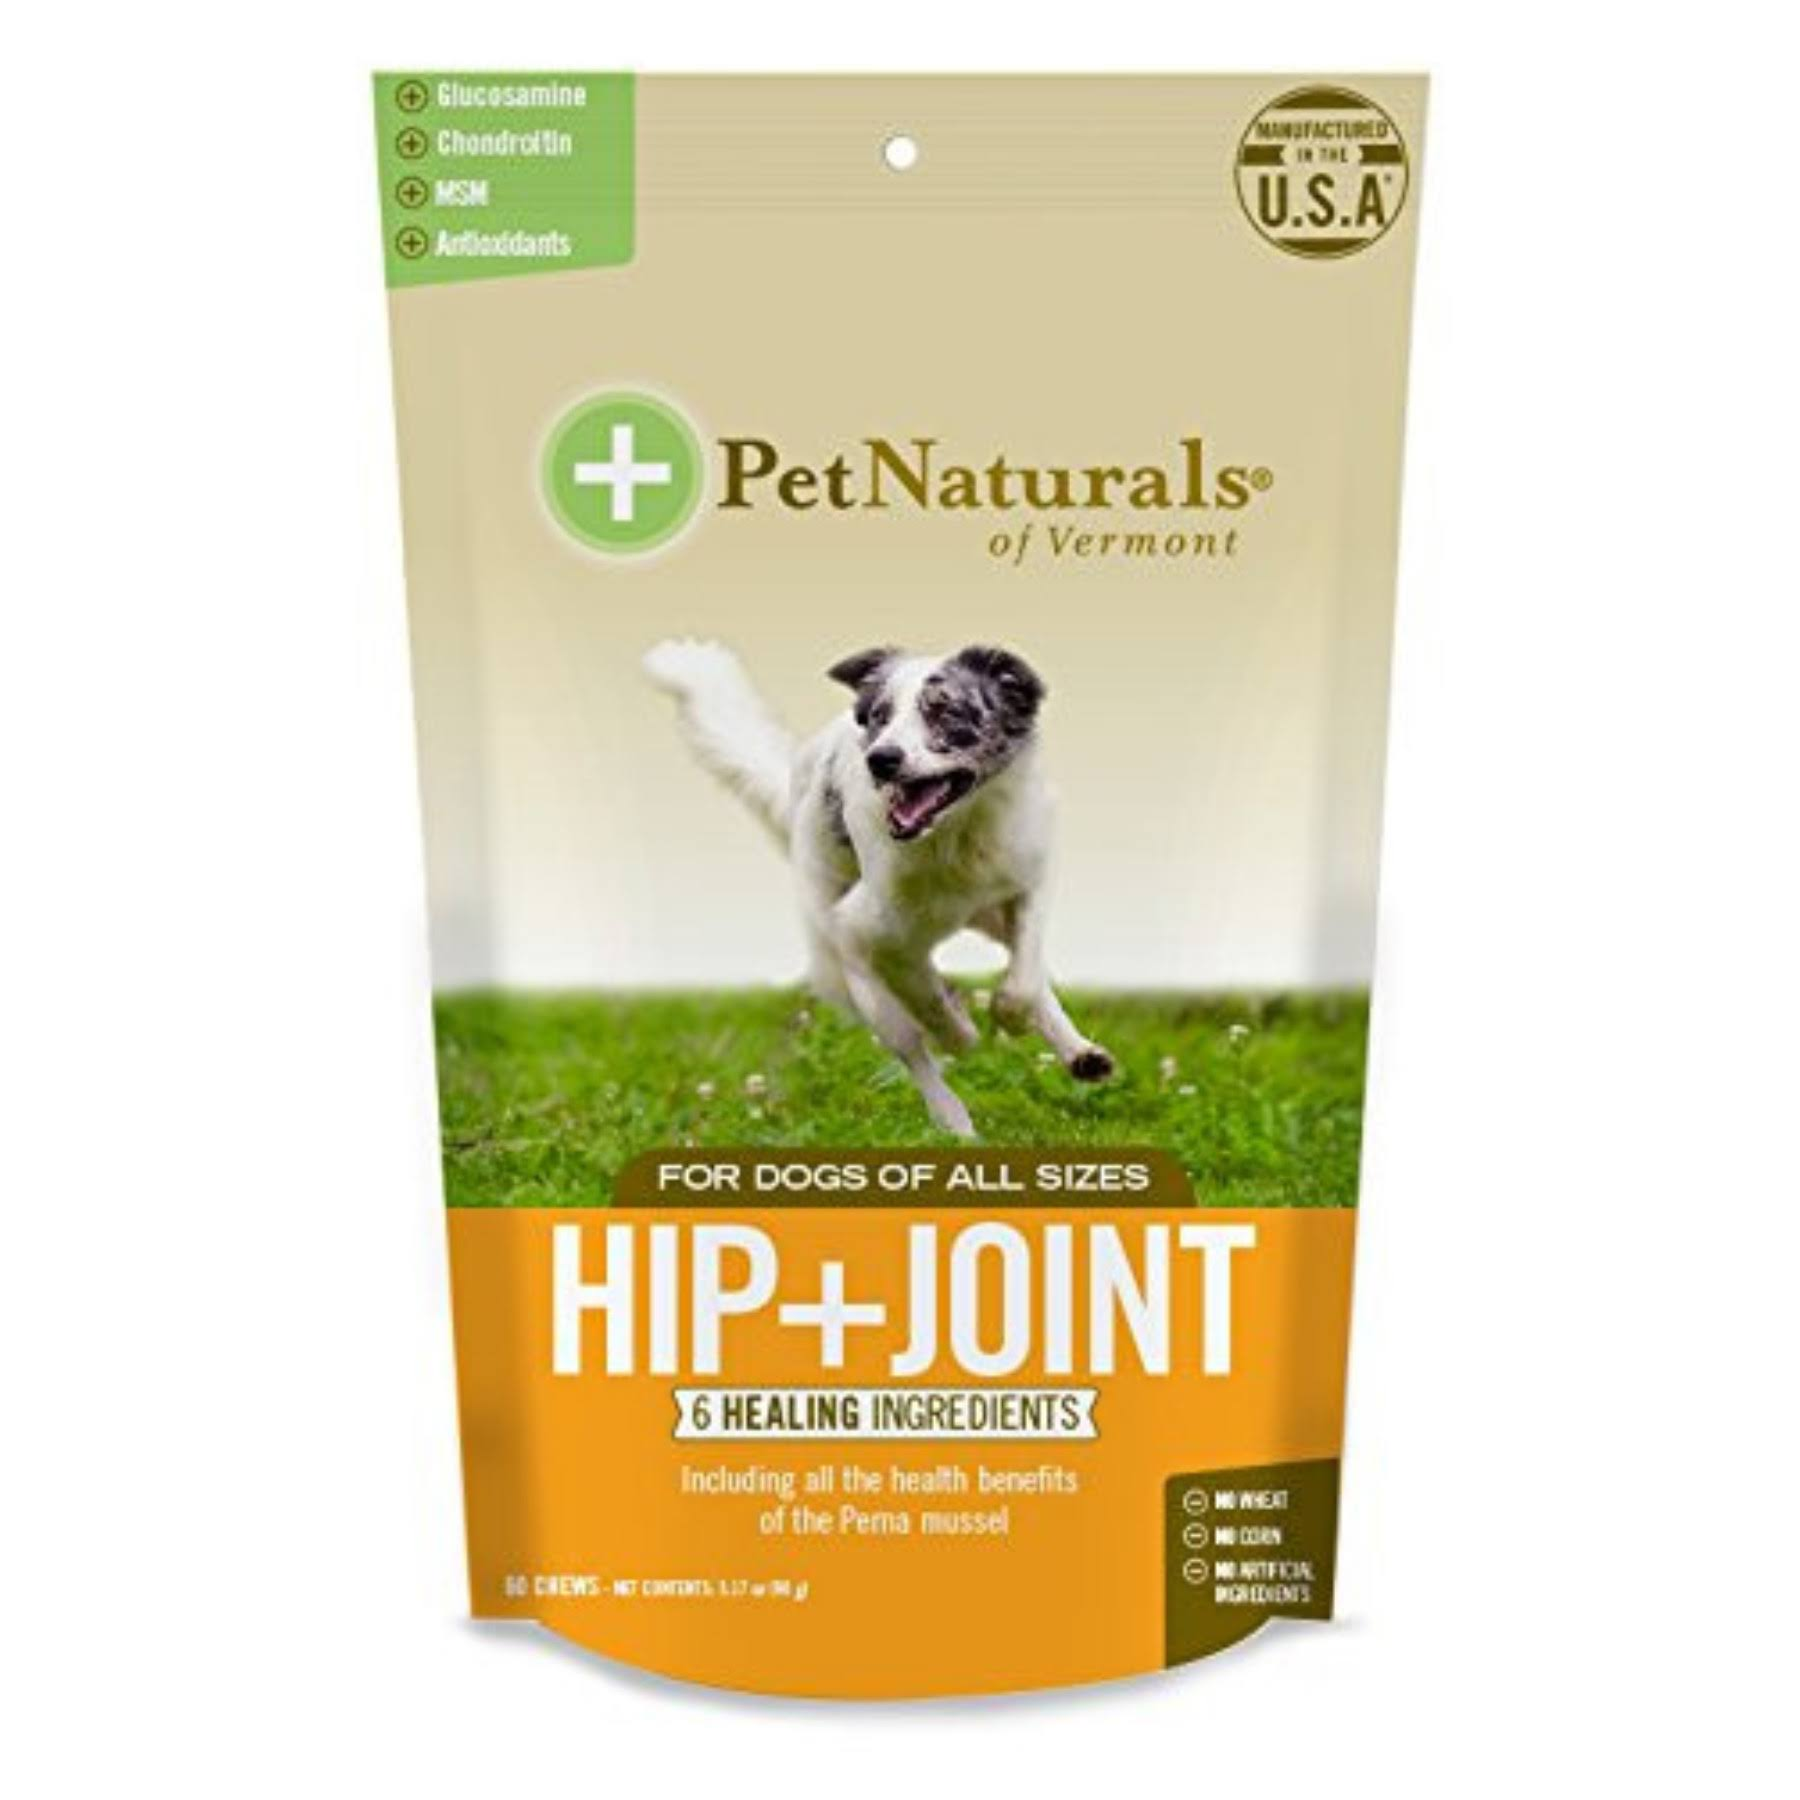 Pet Naturals Hip and Joint Chews for Dogs, Tablets - 60 count, 3.17 oz packet